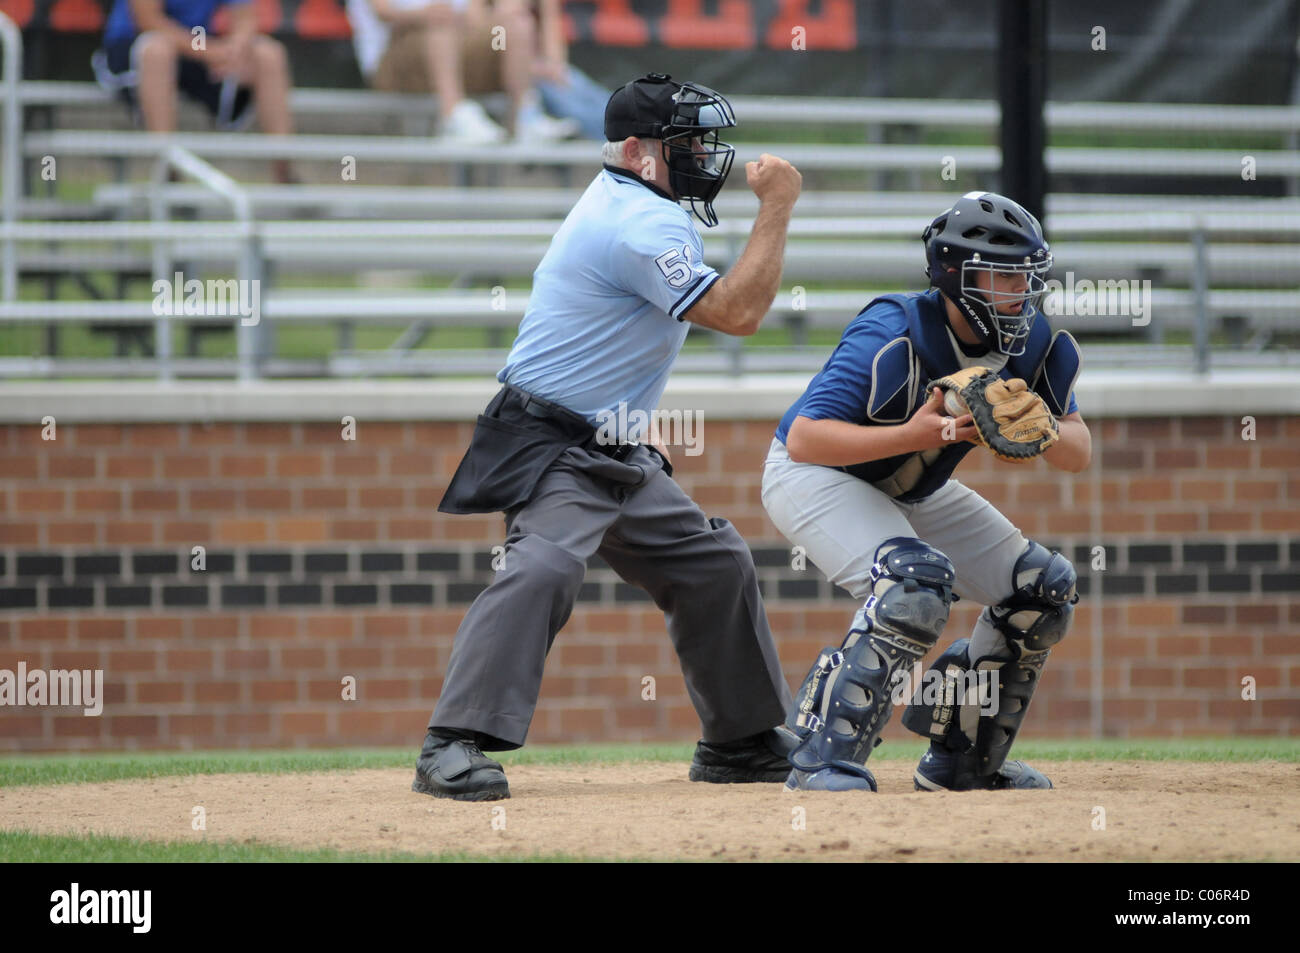 Home plate umpire rings up the batter with a third strike call during a high school & Baseball Umpire Stock Photos u0026 Baseball Umpire Stock Images - Alamy